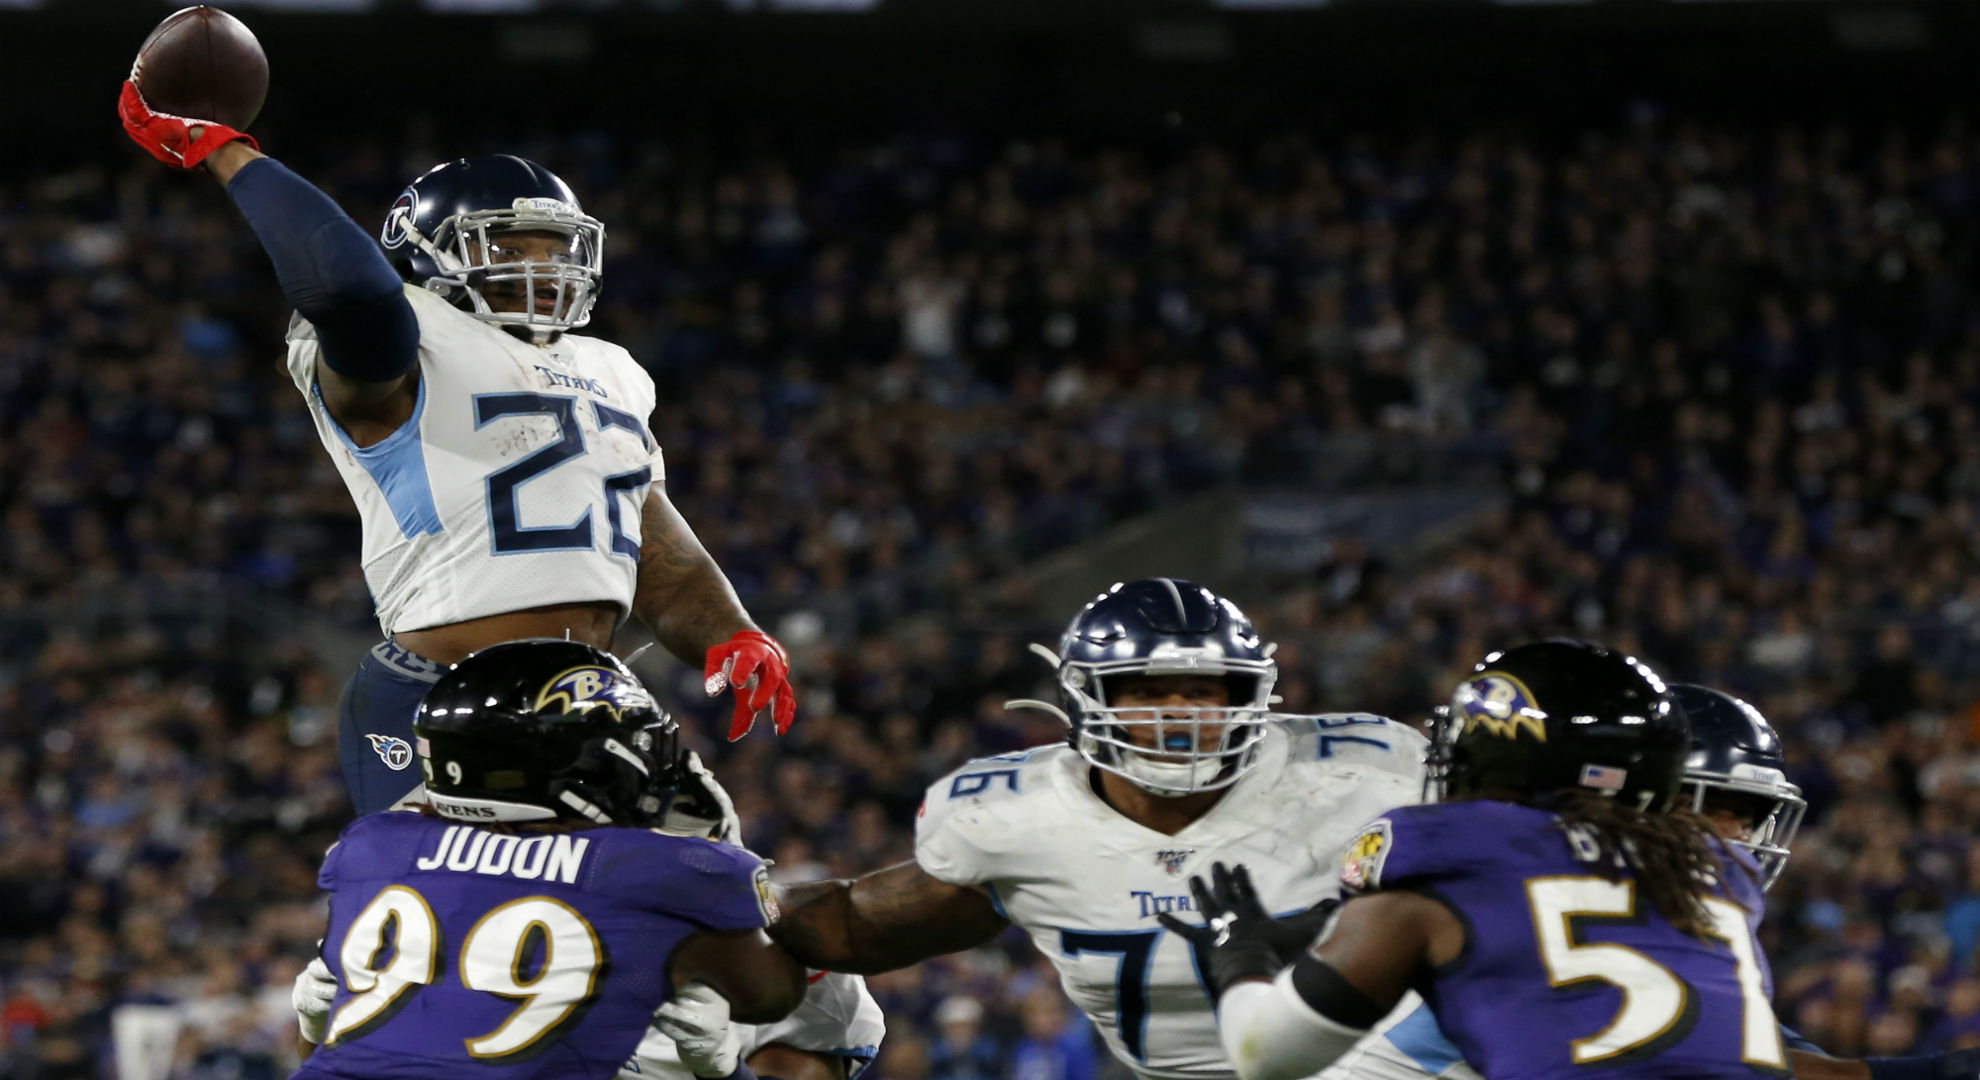 ravens vs titans final score derrick henry tennessee stun top seeded baltimore sporting news ravens vs titans final score derrick